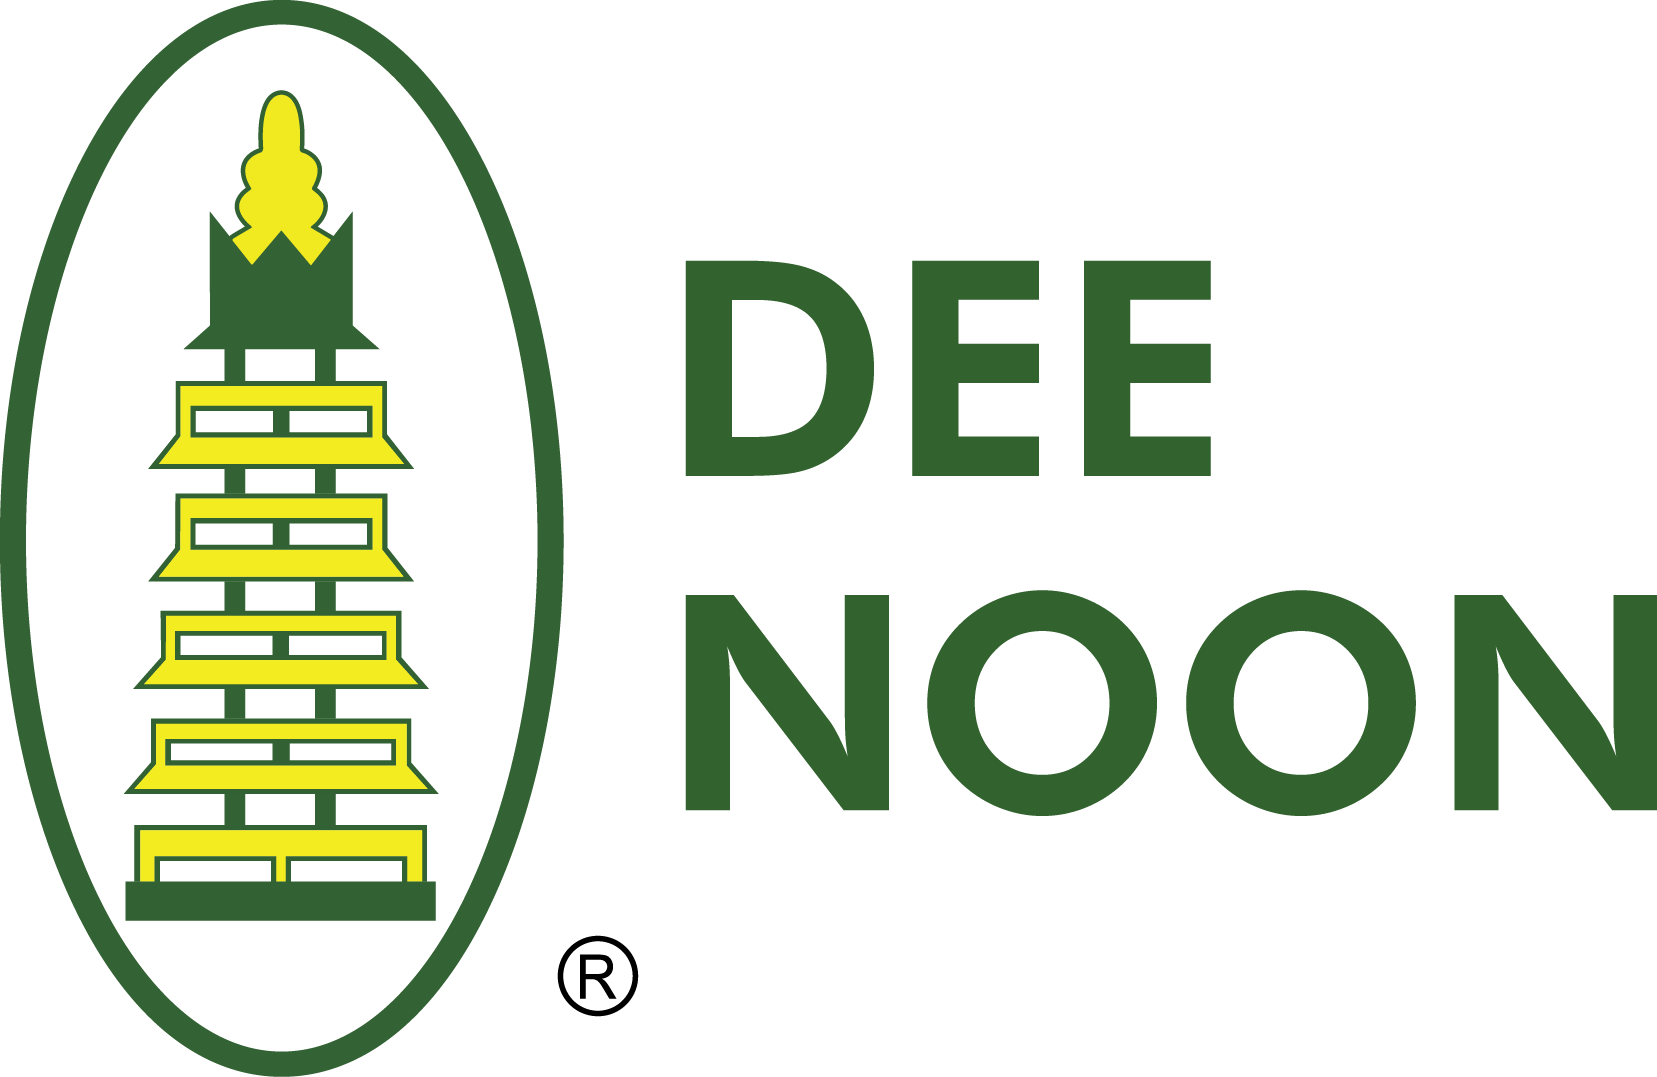 DN Logo 2020 (png format)